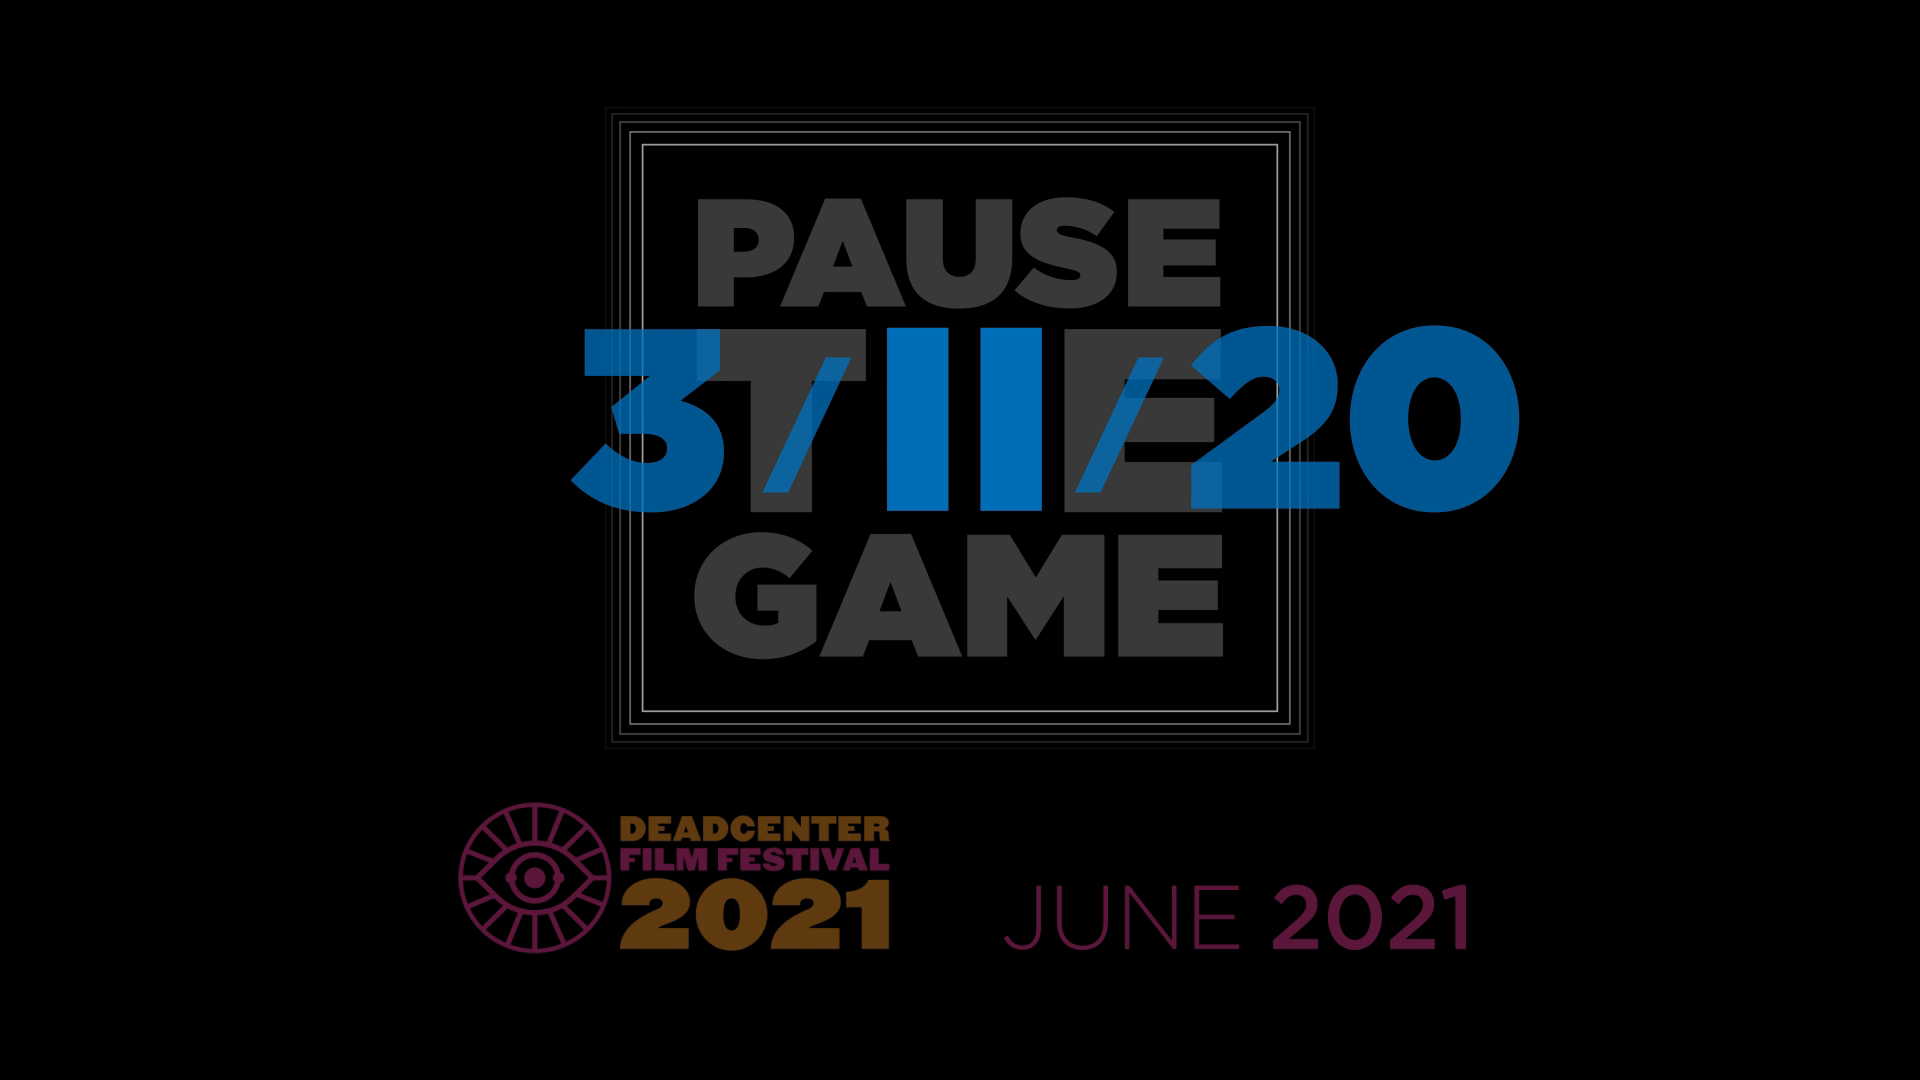 3/11/2020: Pause the Game